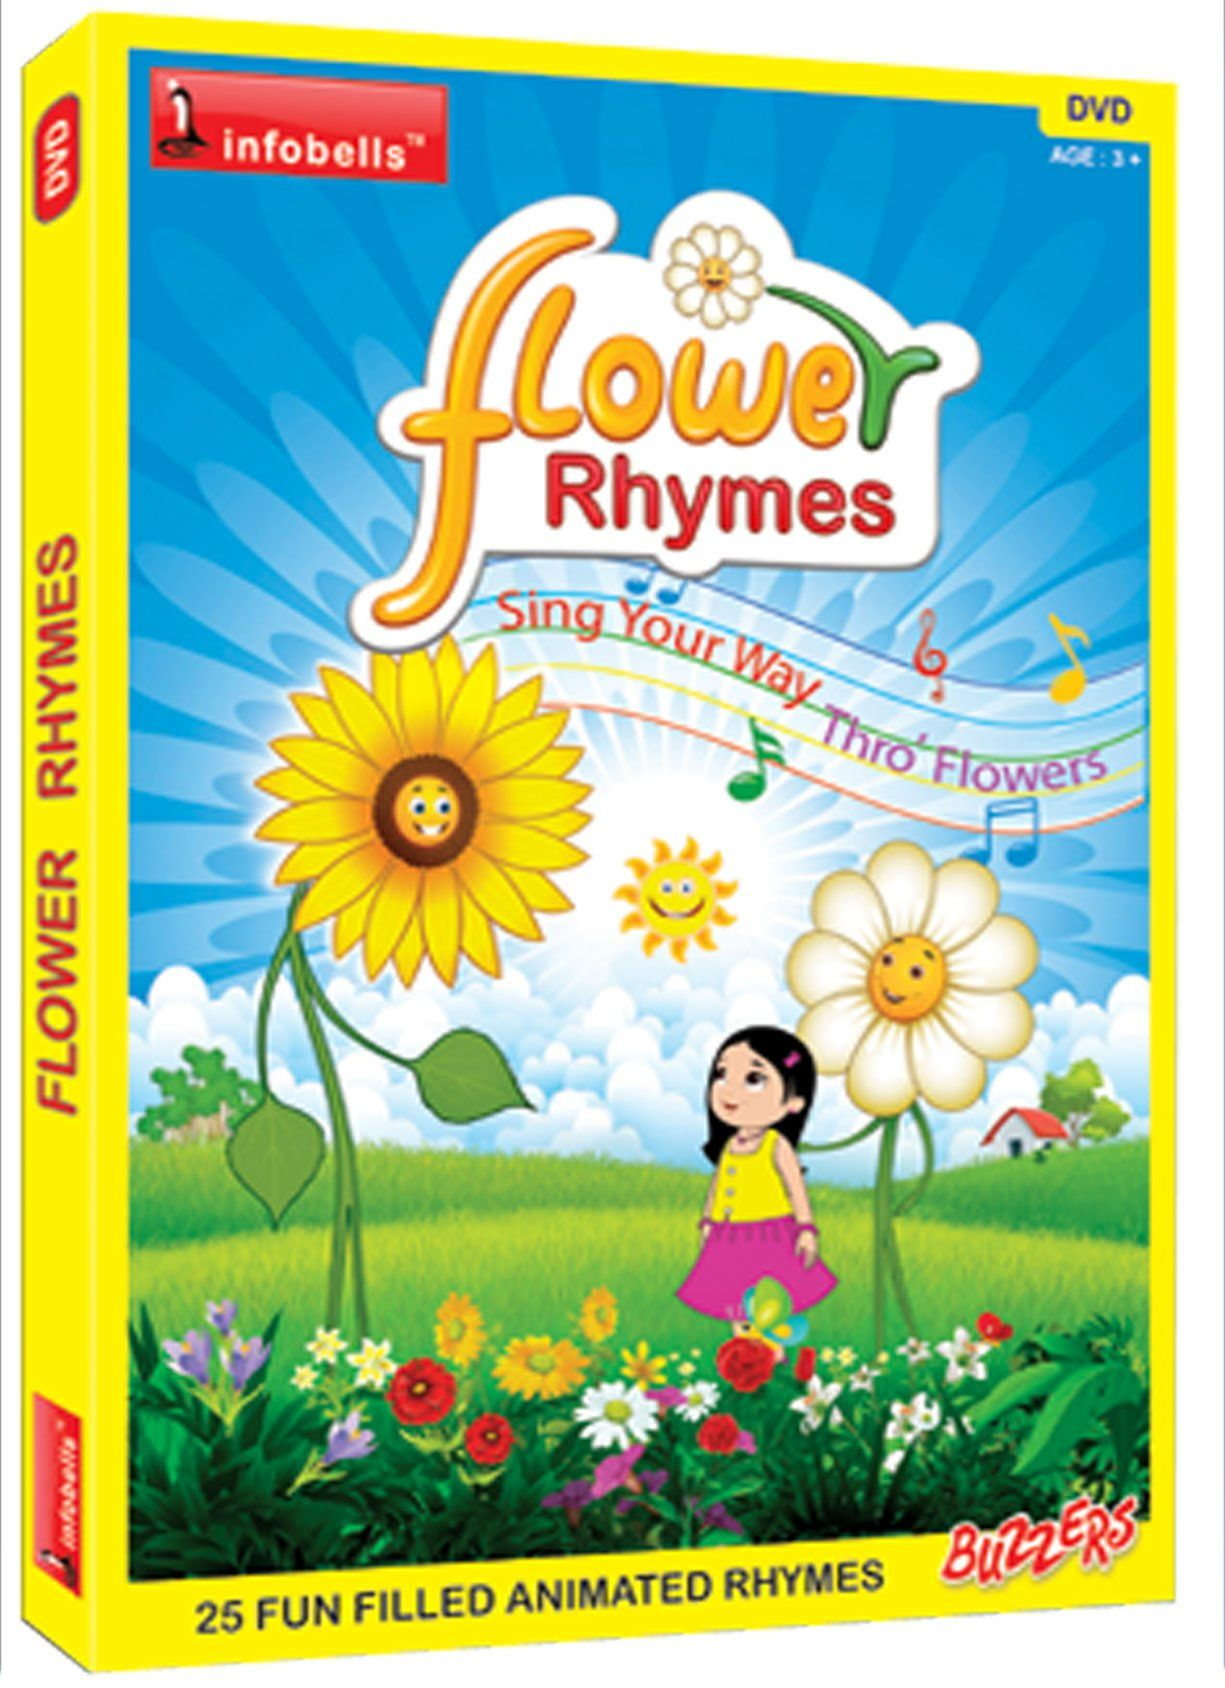 Infobells Flower Rhymes Movies Movies and TV Shows